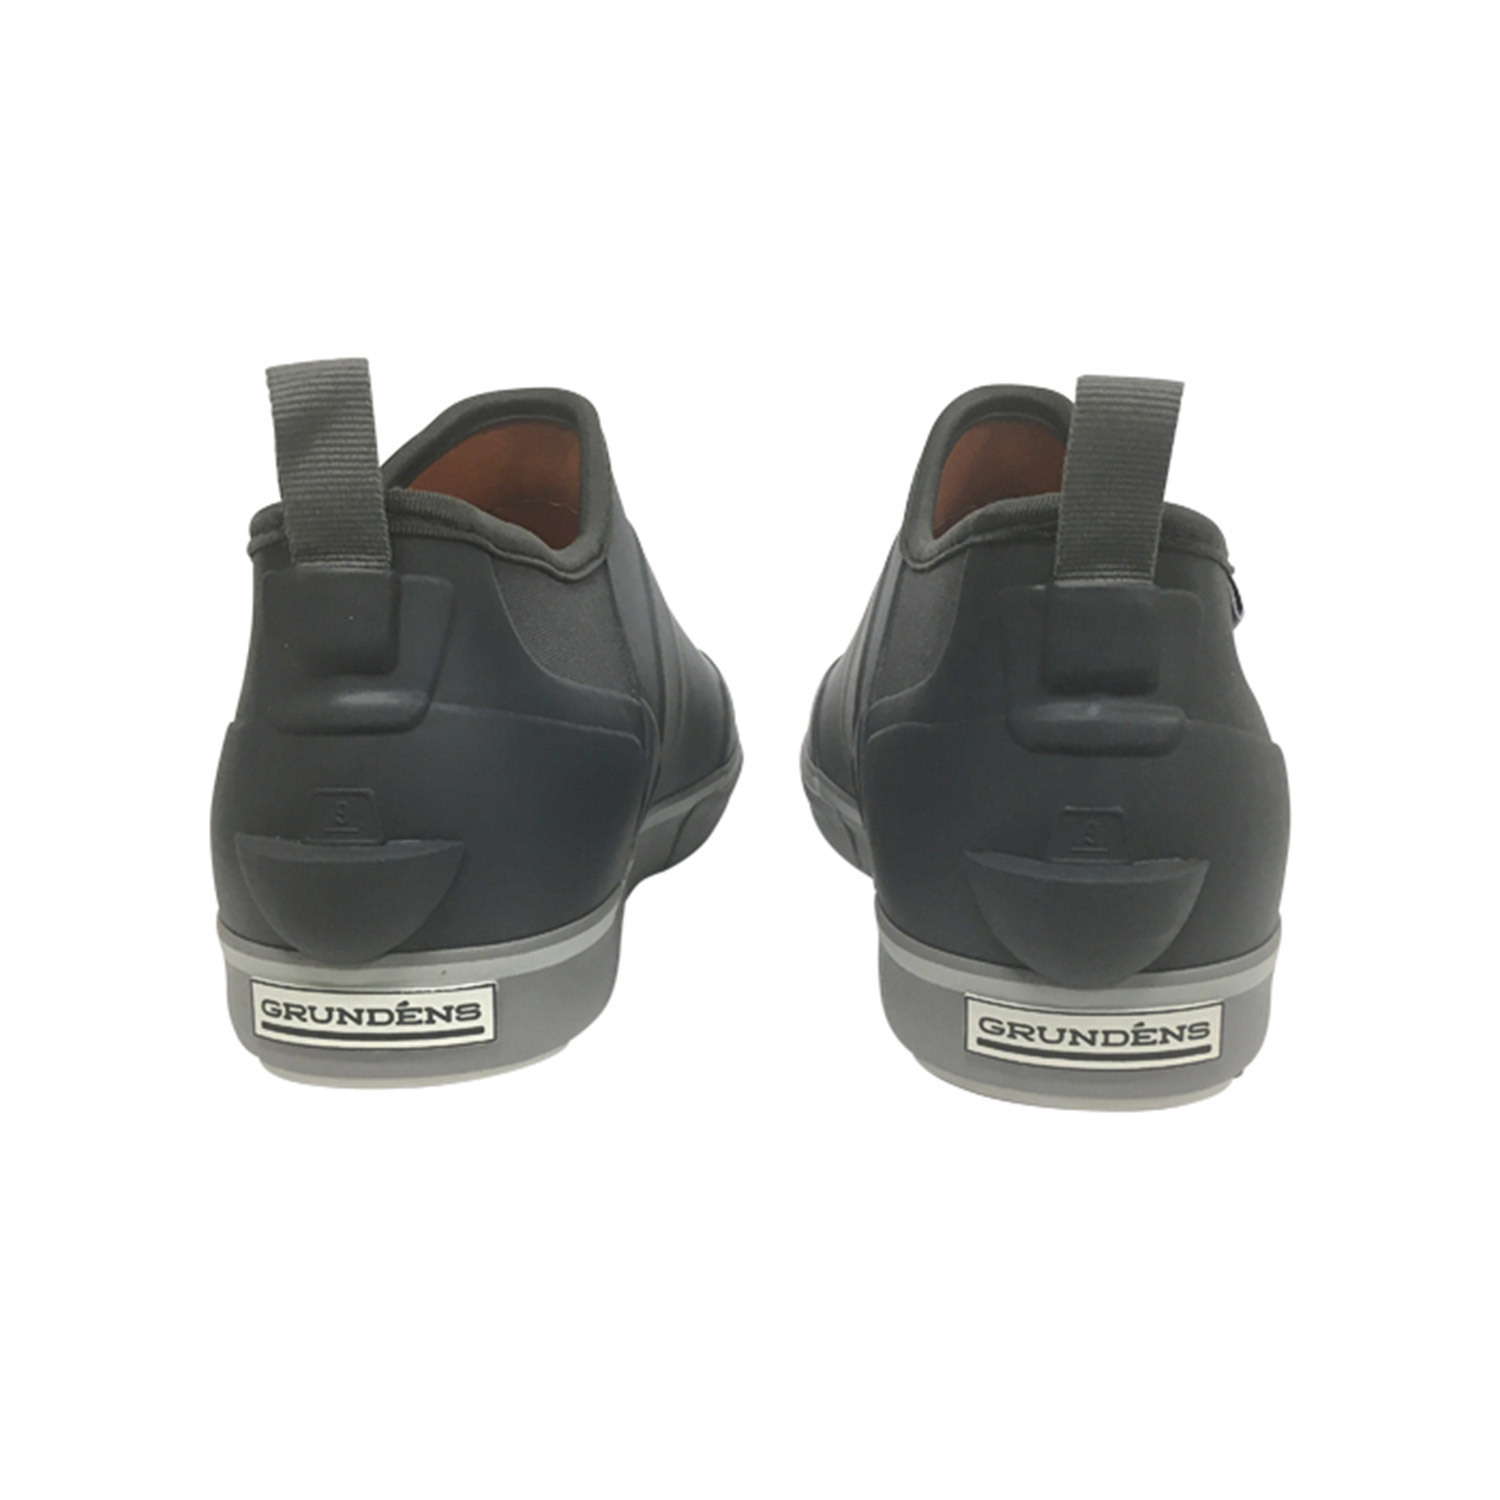 Deck Boss Slip-On Ankle Boots